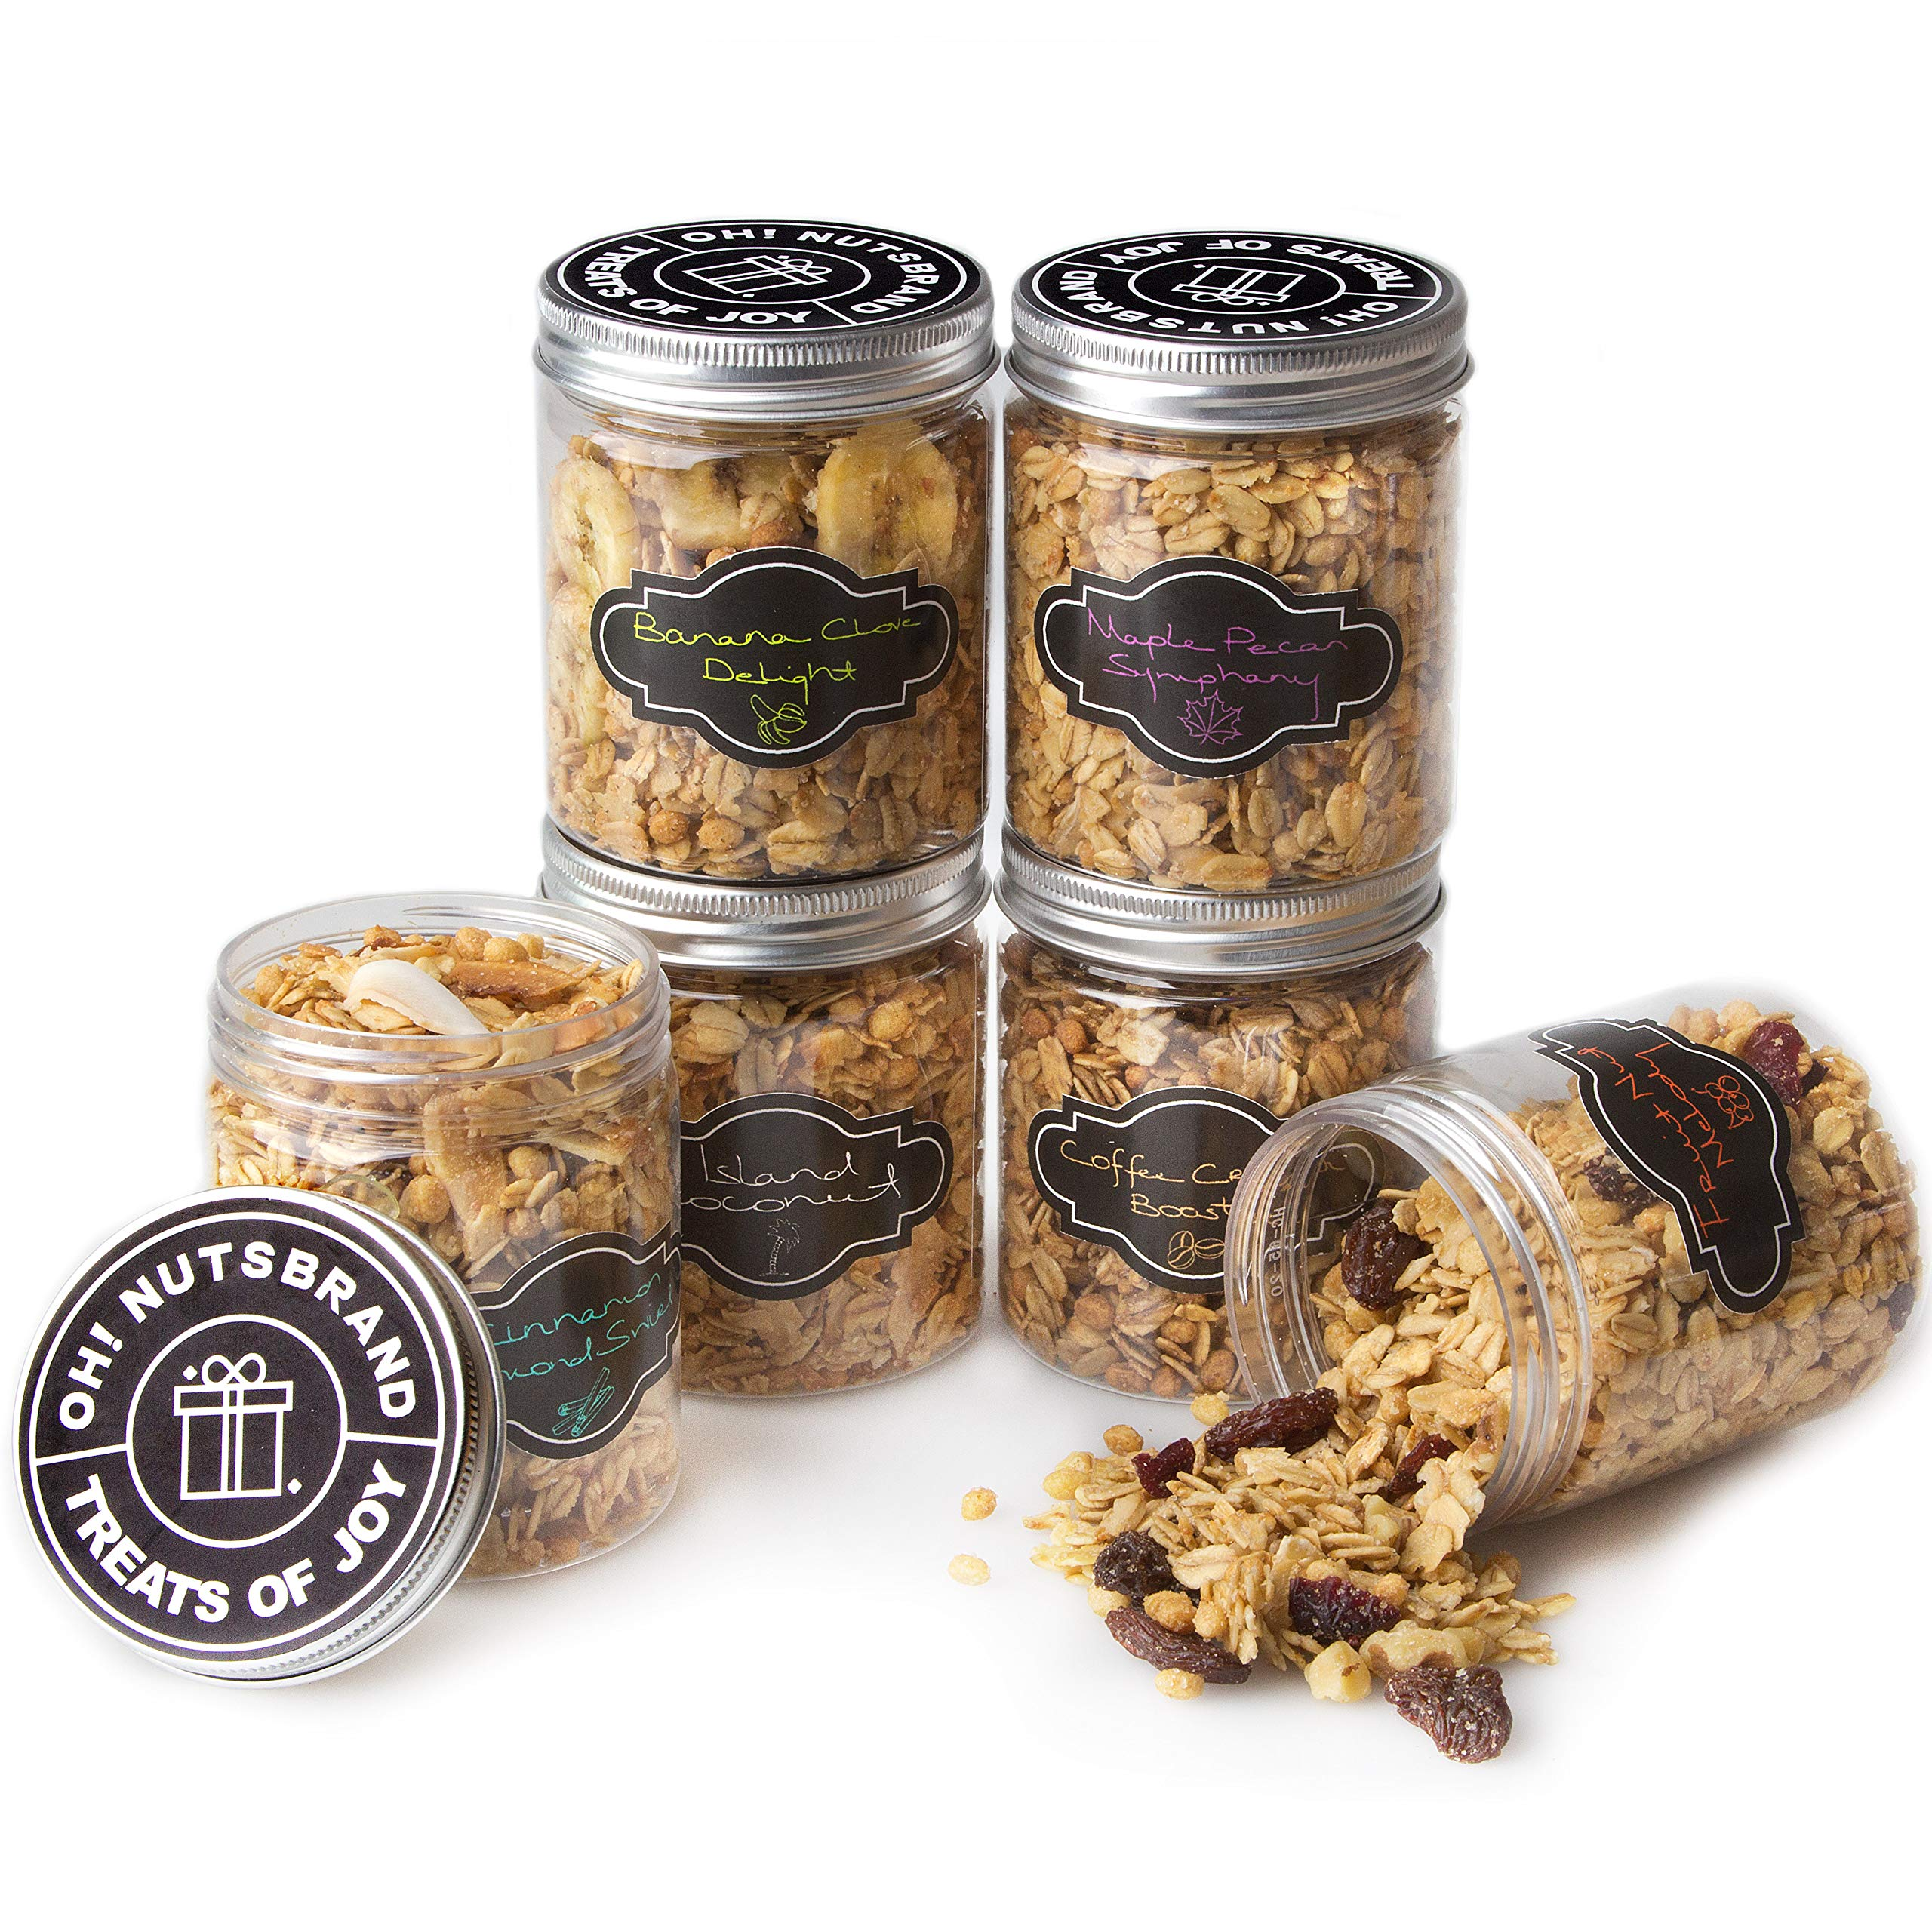 Oh! Nuts Gourmet Granola 6 Variety Gift Basket, Toasted Oats + Enhanced Protein Cereals, Christmas Breakfast Cereal Set, Holiday Valentines Day Energy Snack Gifts for Men & Women by oh! Nuts (Image #3)